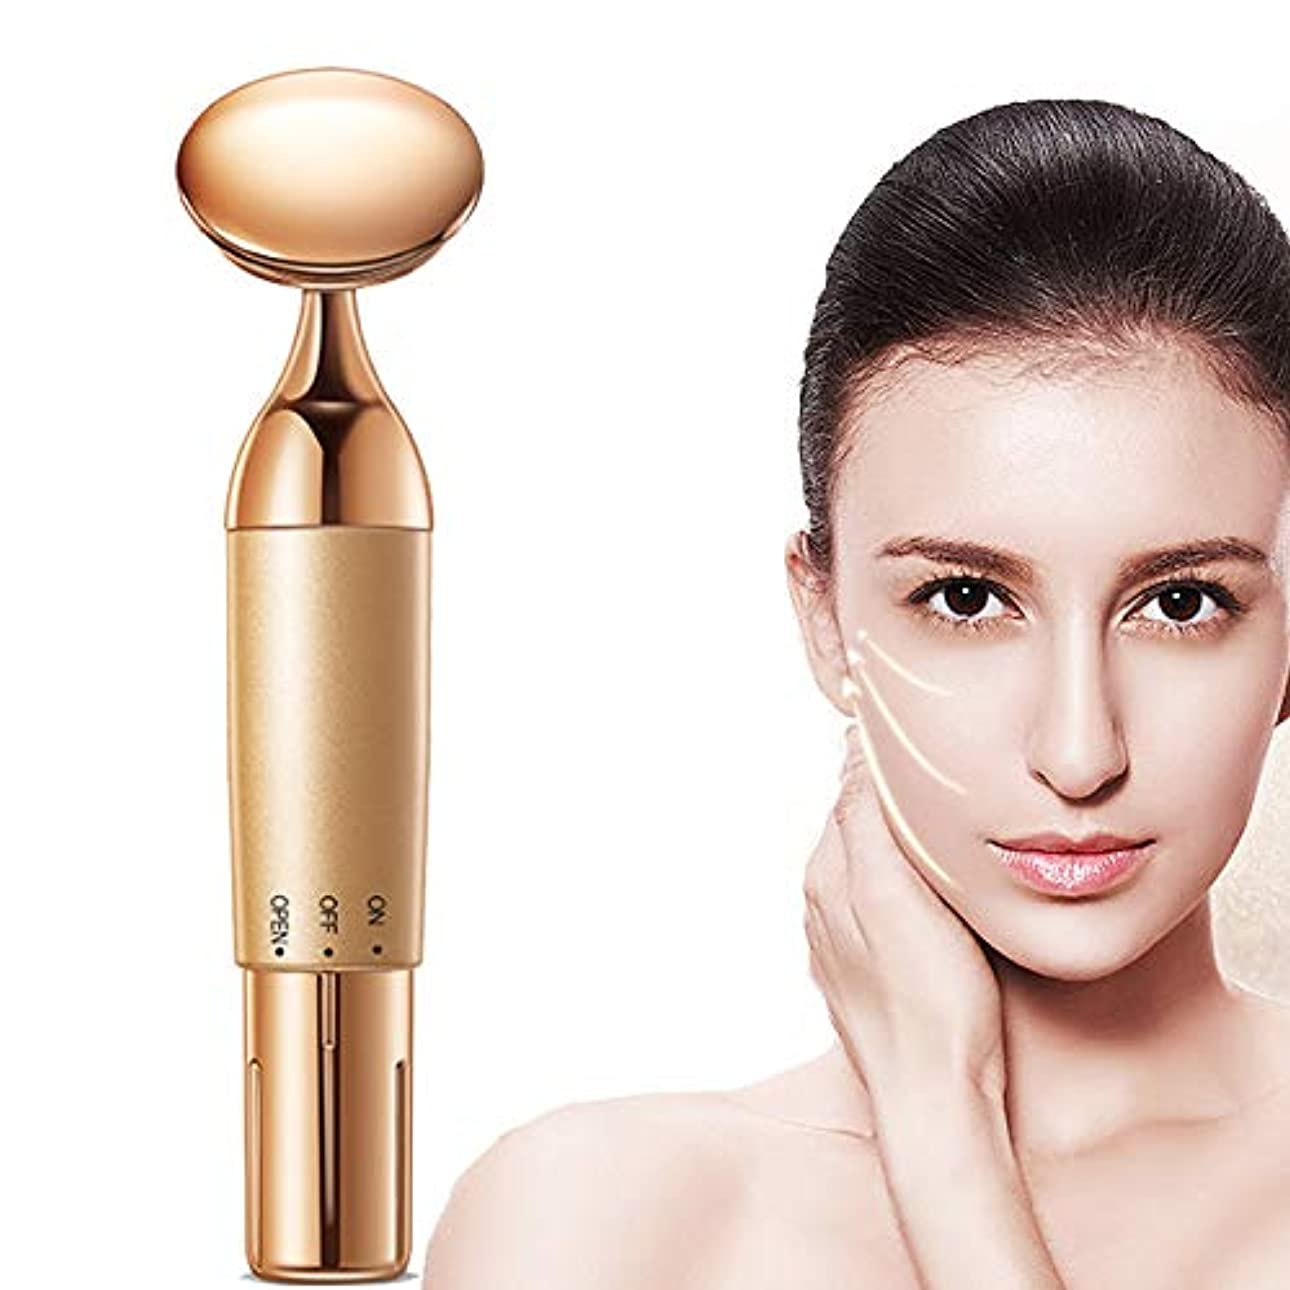 ワーディアンケース美人ばかRF lifting device Facial beauty massager facial lifting firming wrinkle removal eye bags roller